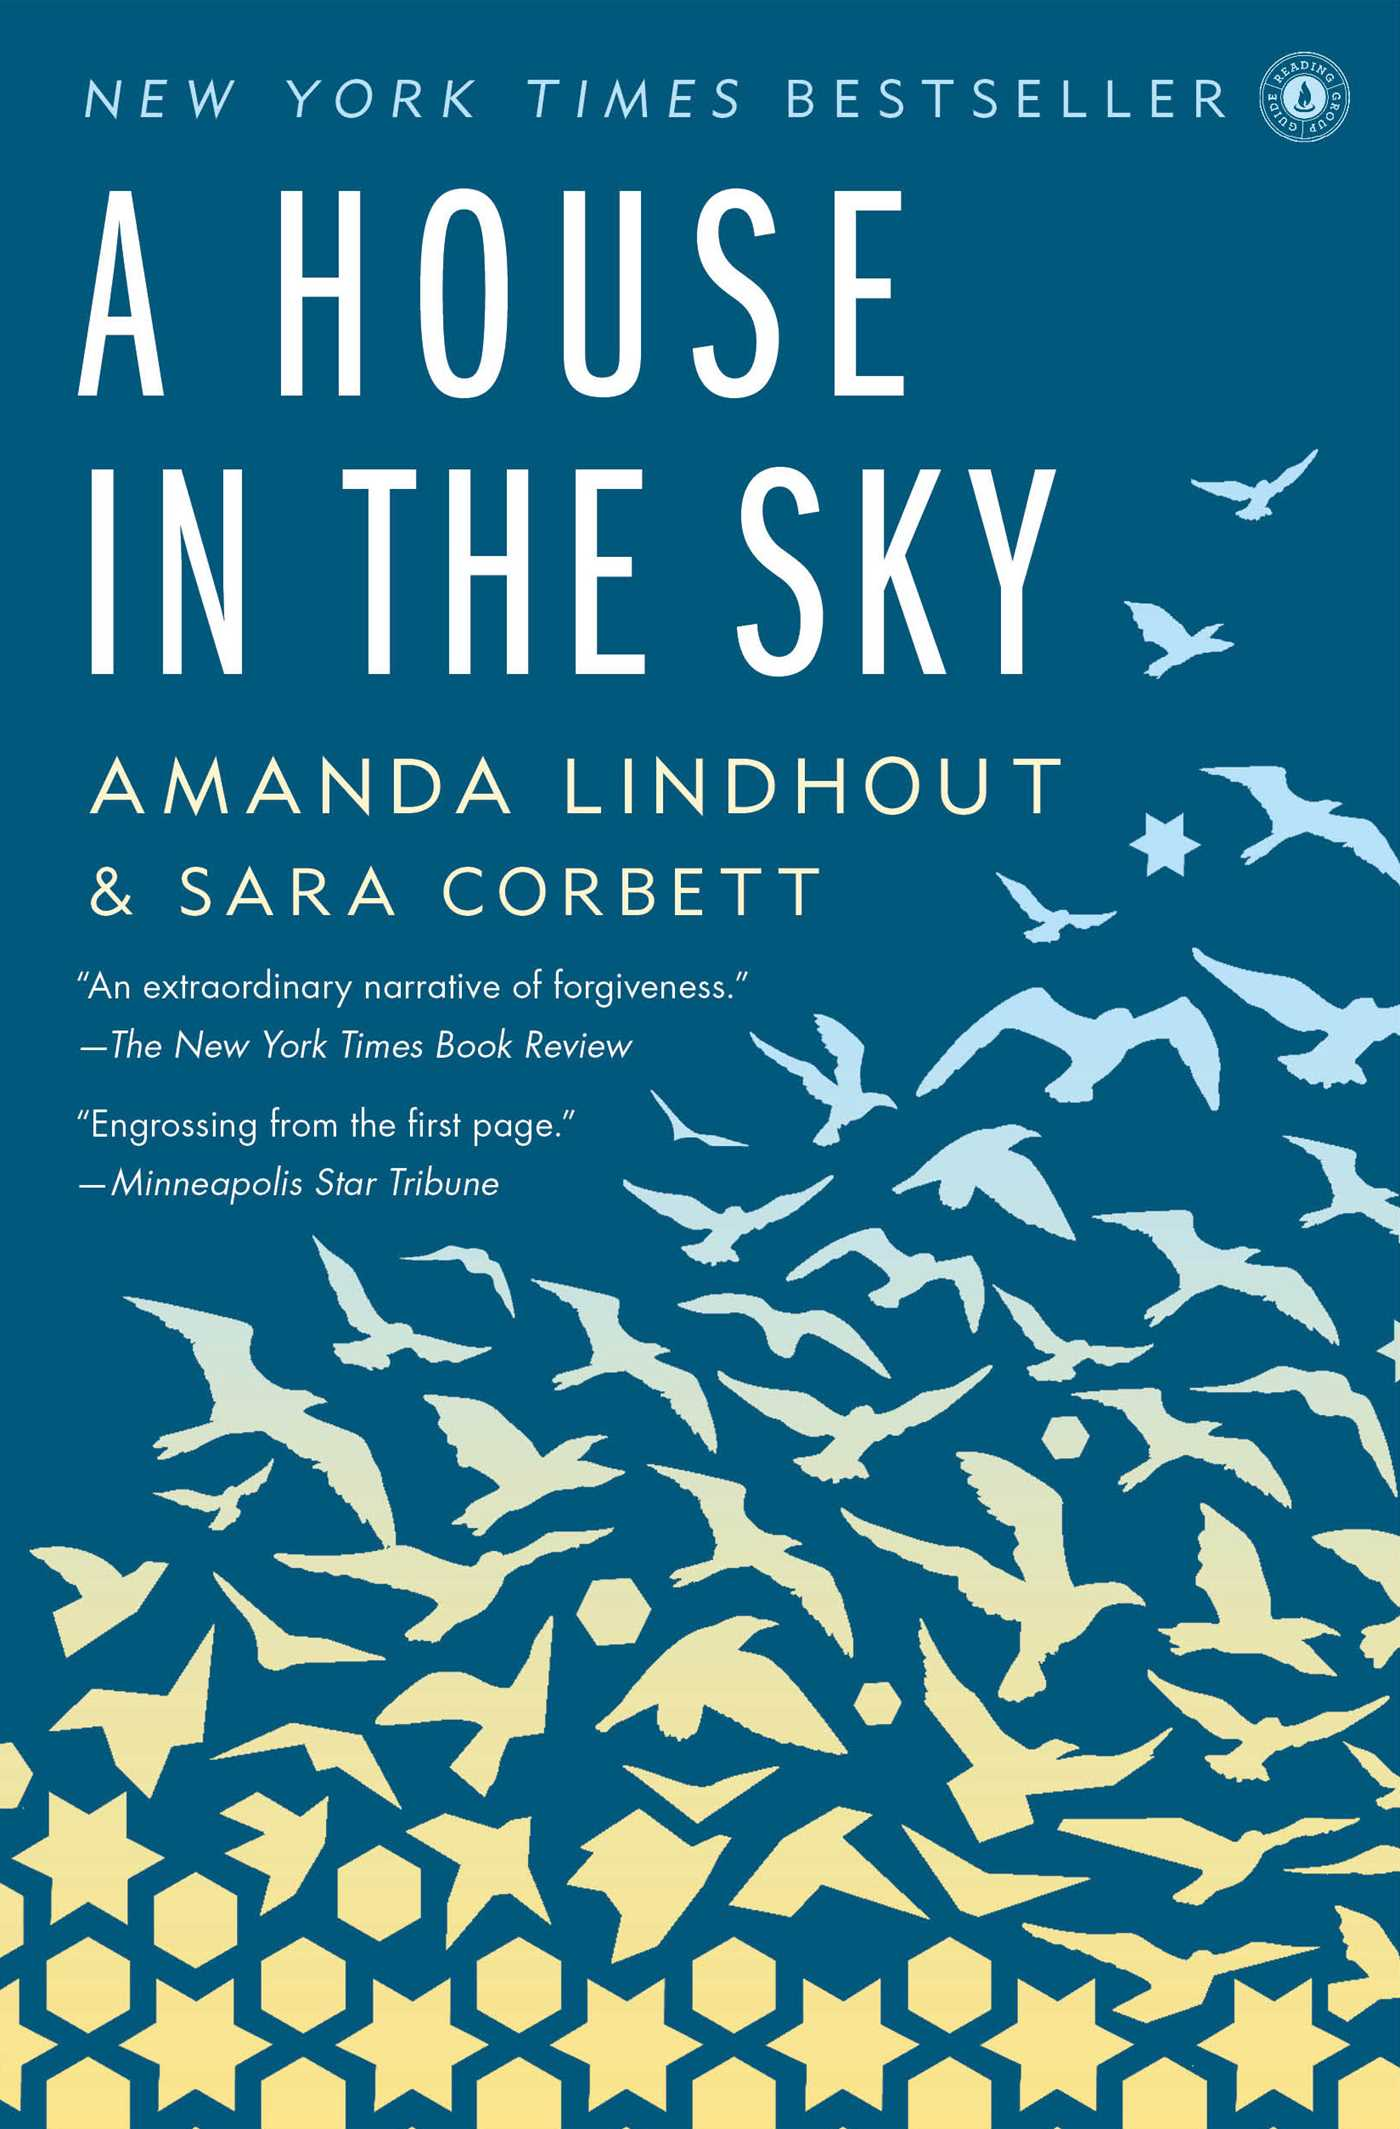 A House in the Sky | Book by Amanda Lindhout, Sara Corbett